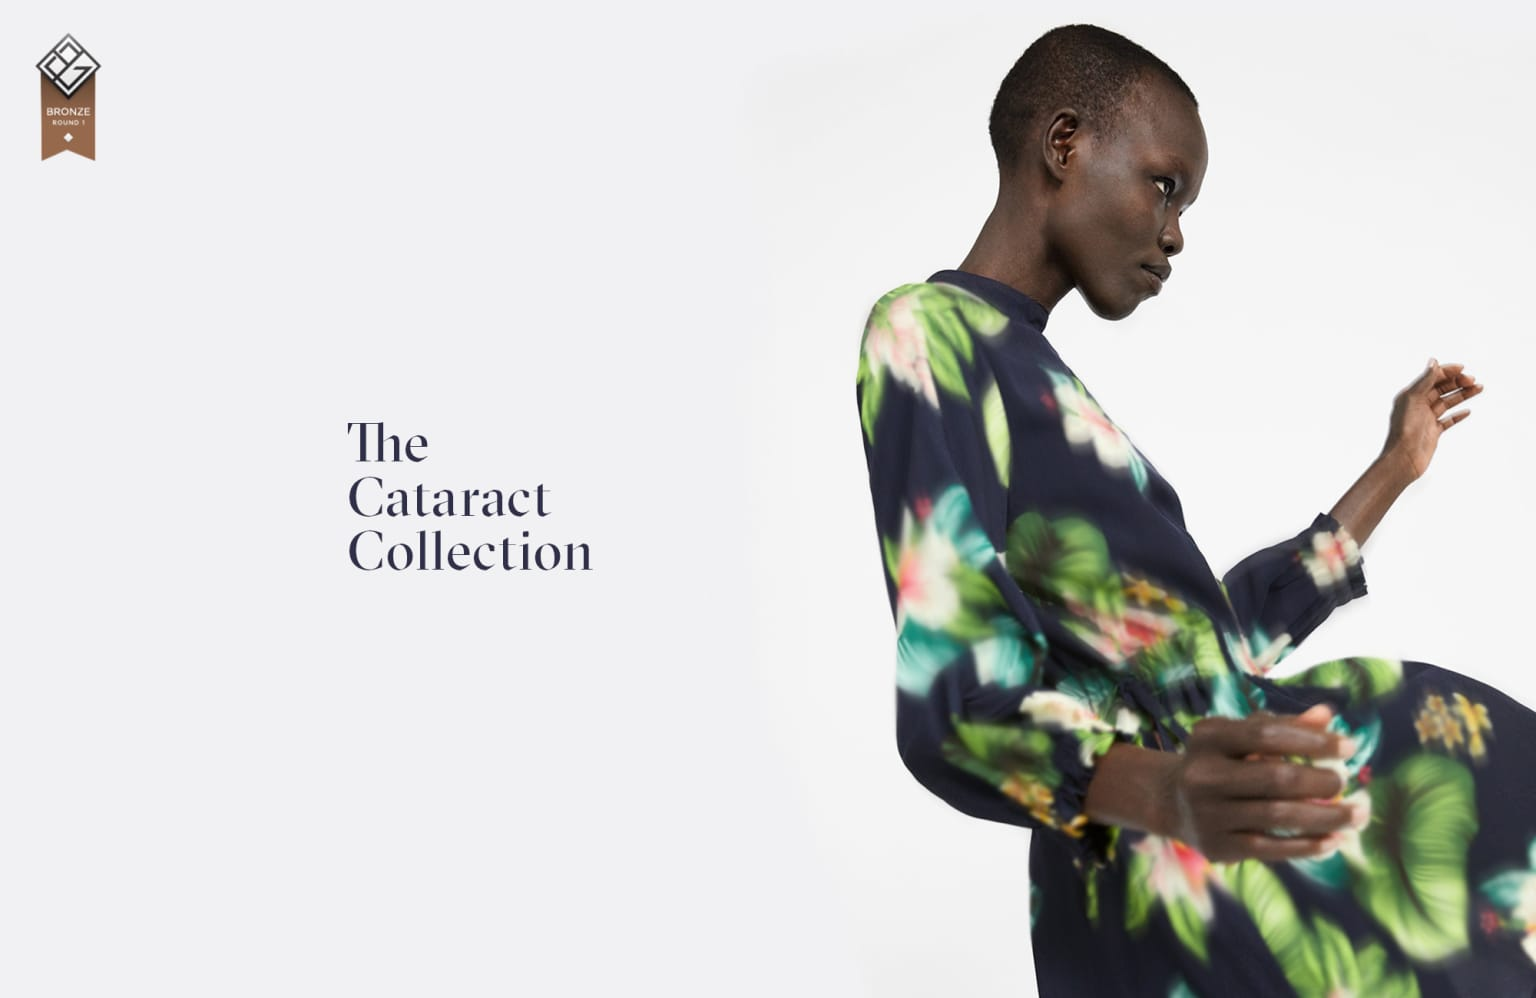 The Cataract Collection